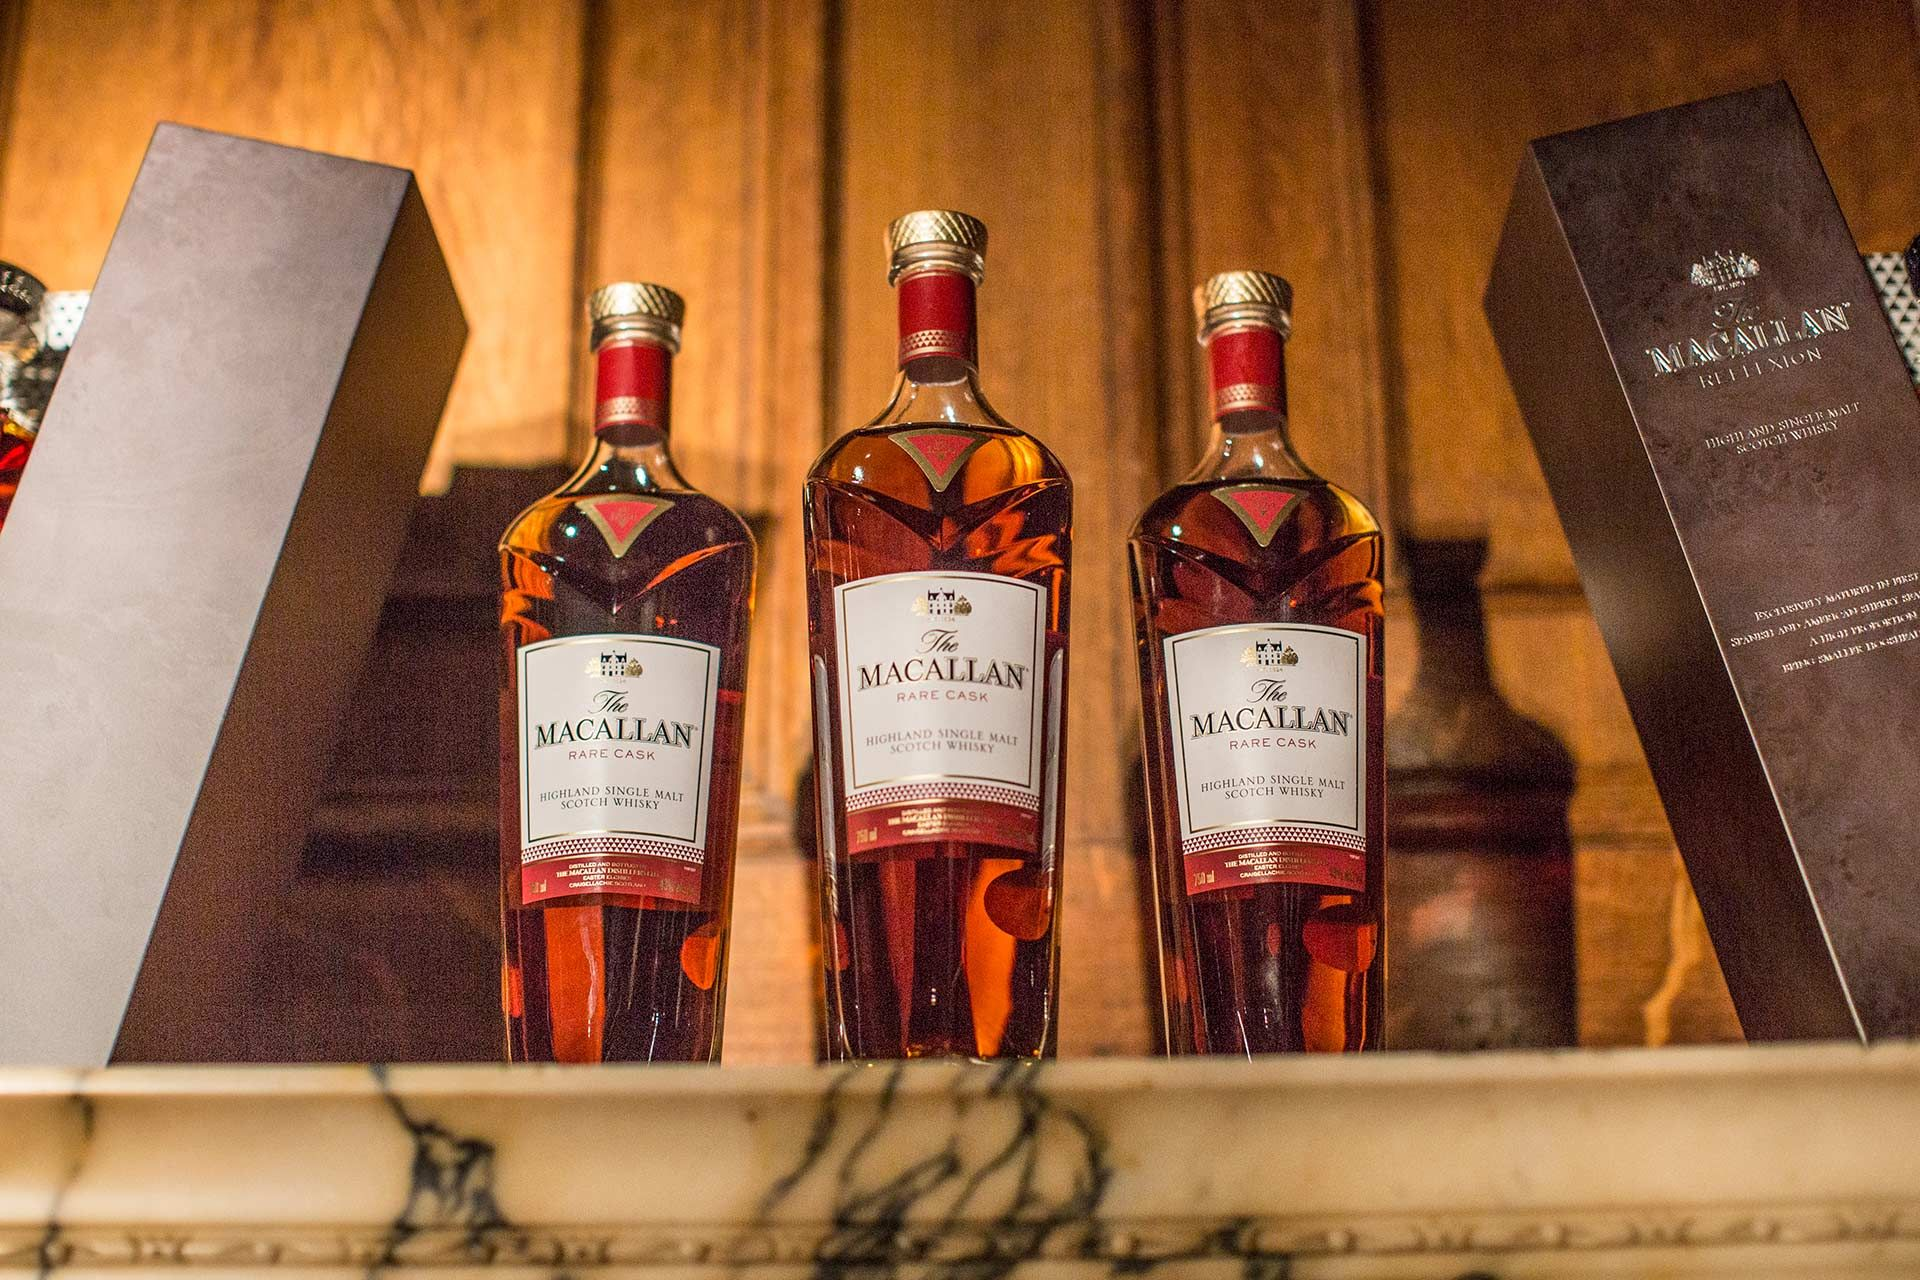 The Macallan Rare Cask Will Make Chinese New Year Extra Special